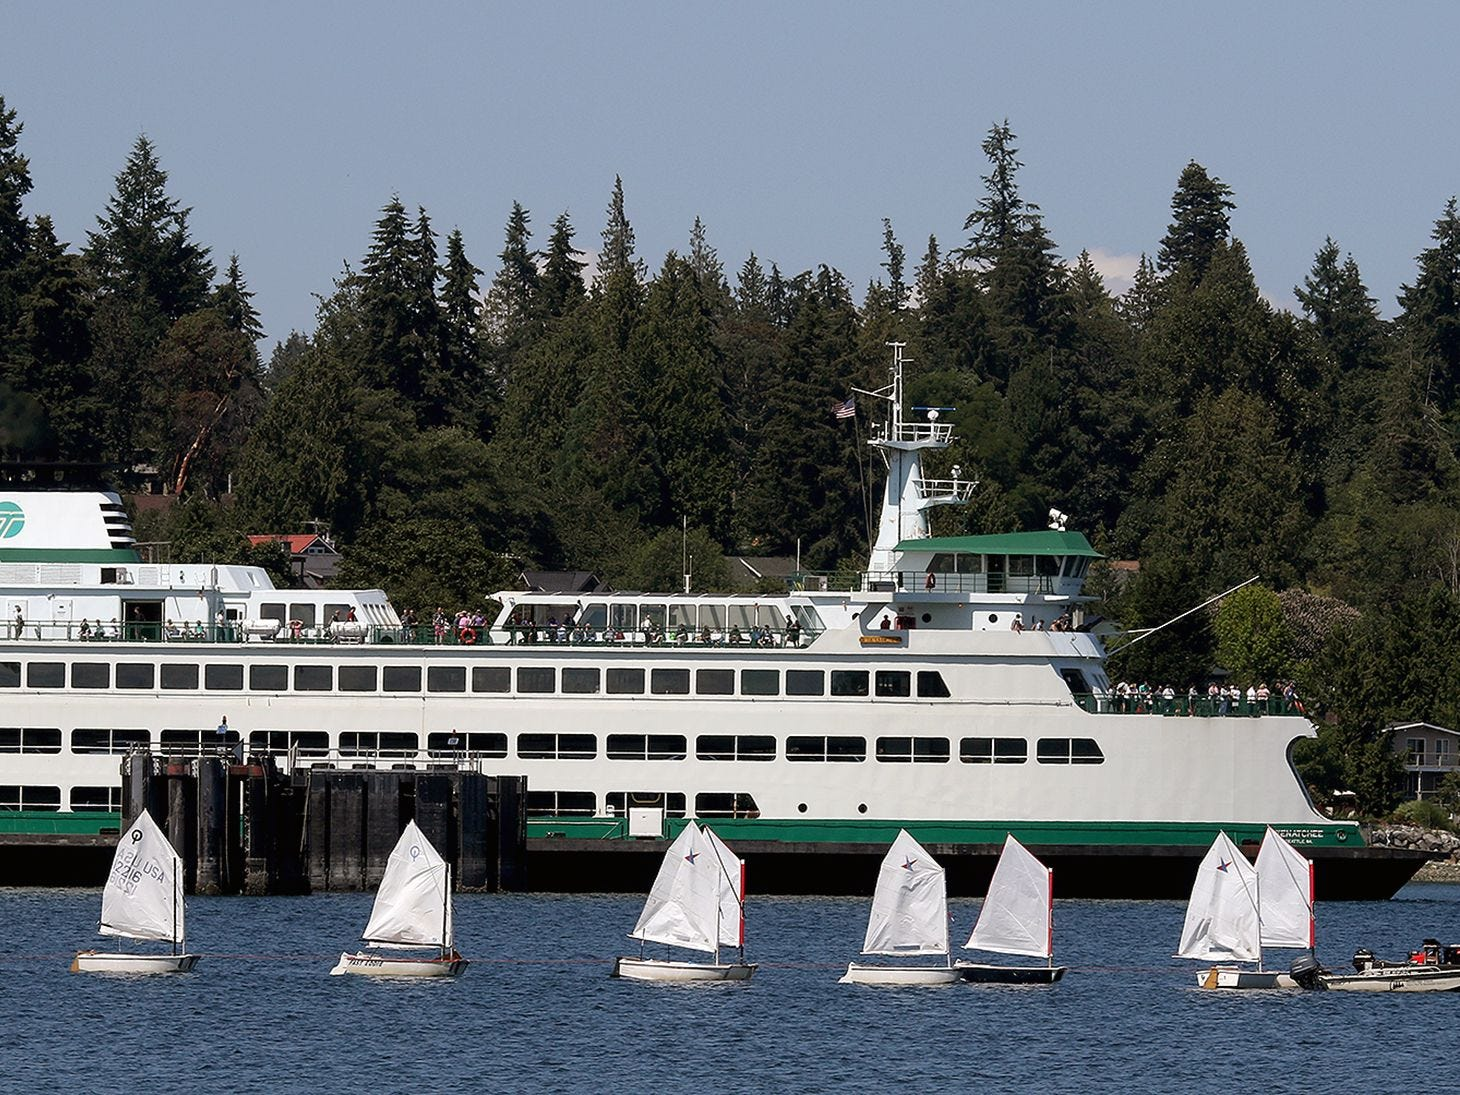 The Washington State Ferry Wenatchee moves past a line of small sailboats in Bainbridge Island's Eagle Harbor on Friday July 20, 2018.